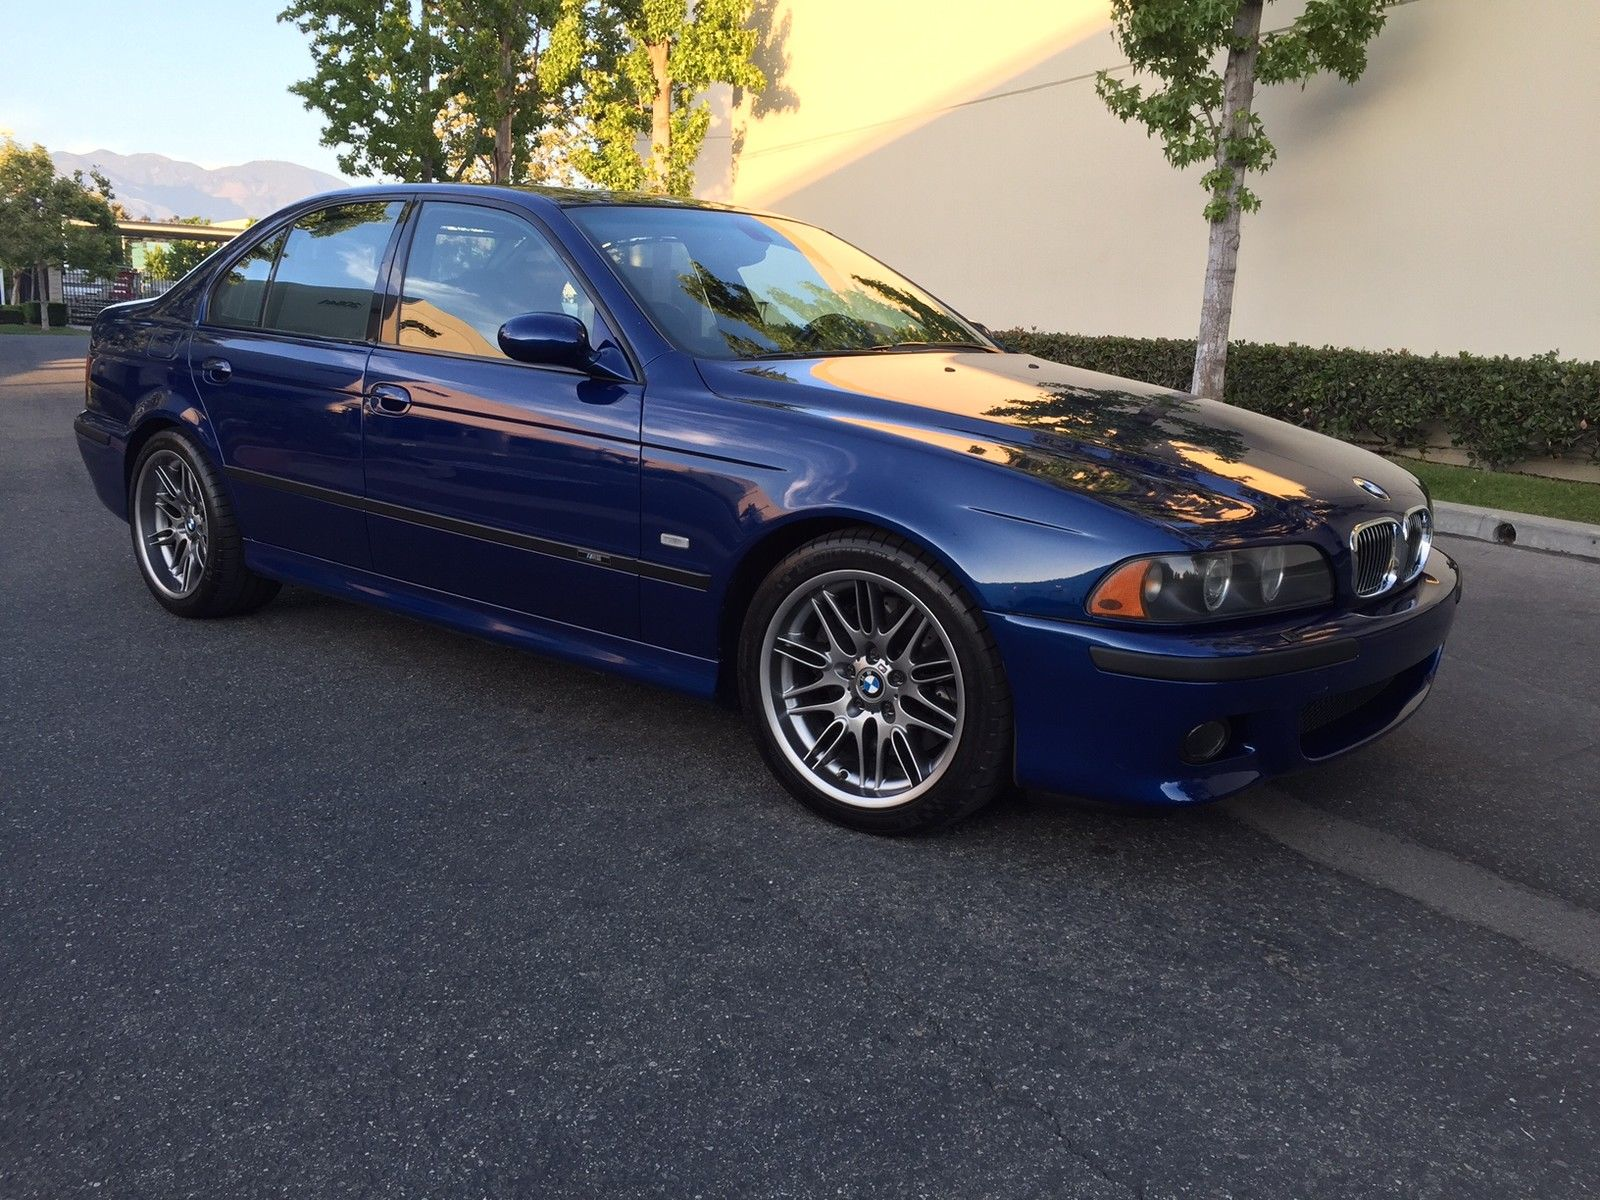 Find this 2000 bmw m5 here on ebay bidding for 8 695 with auction ending thursday at 9 22pm pacific